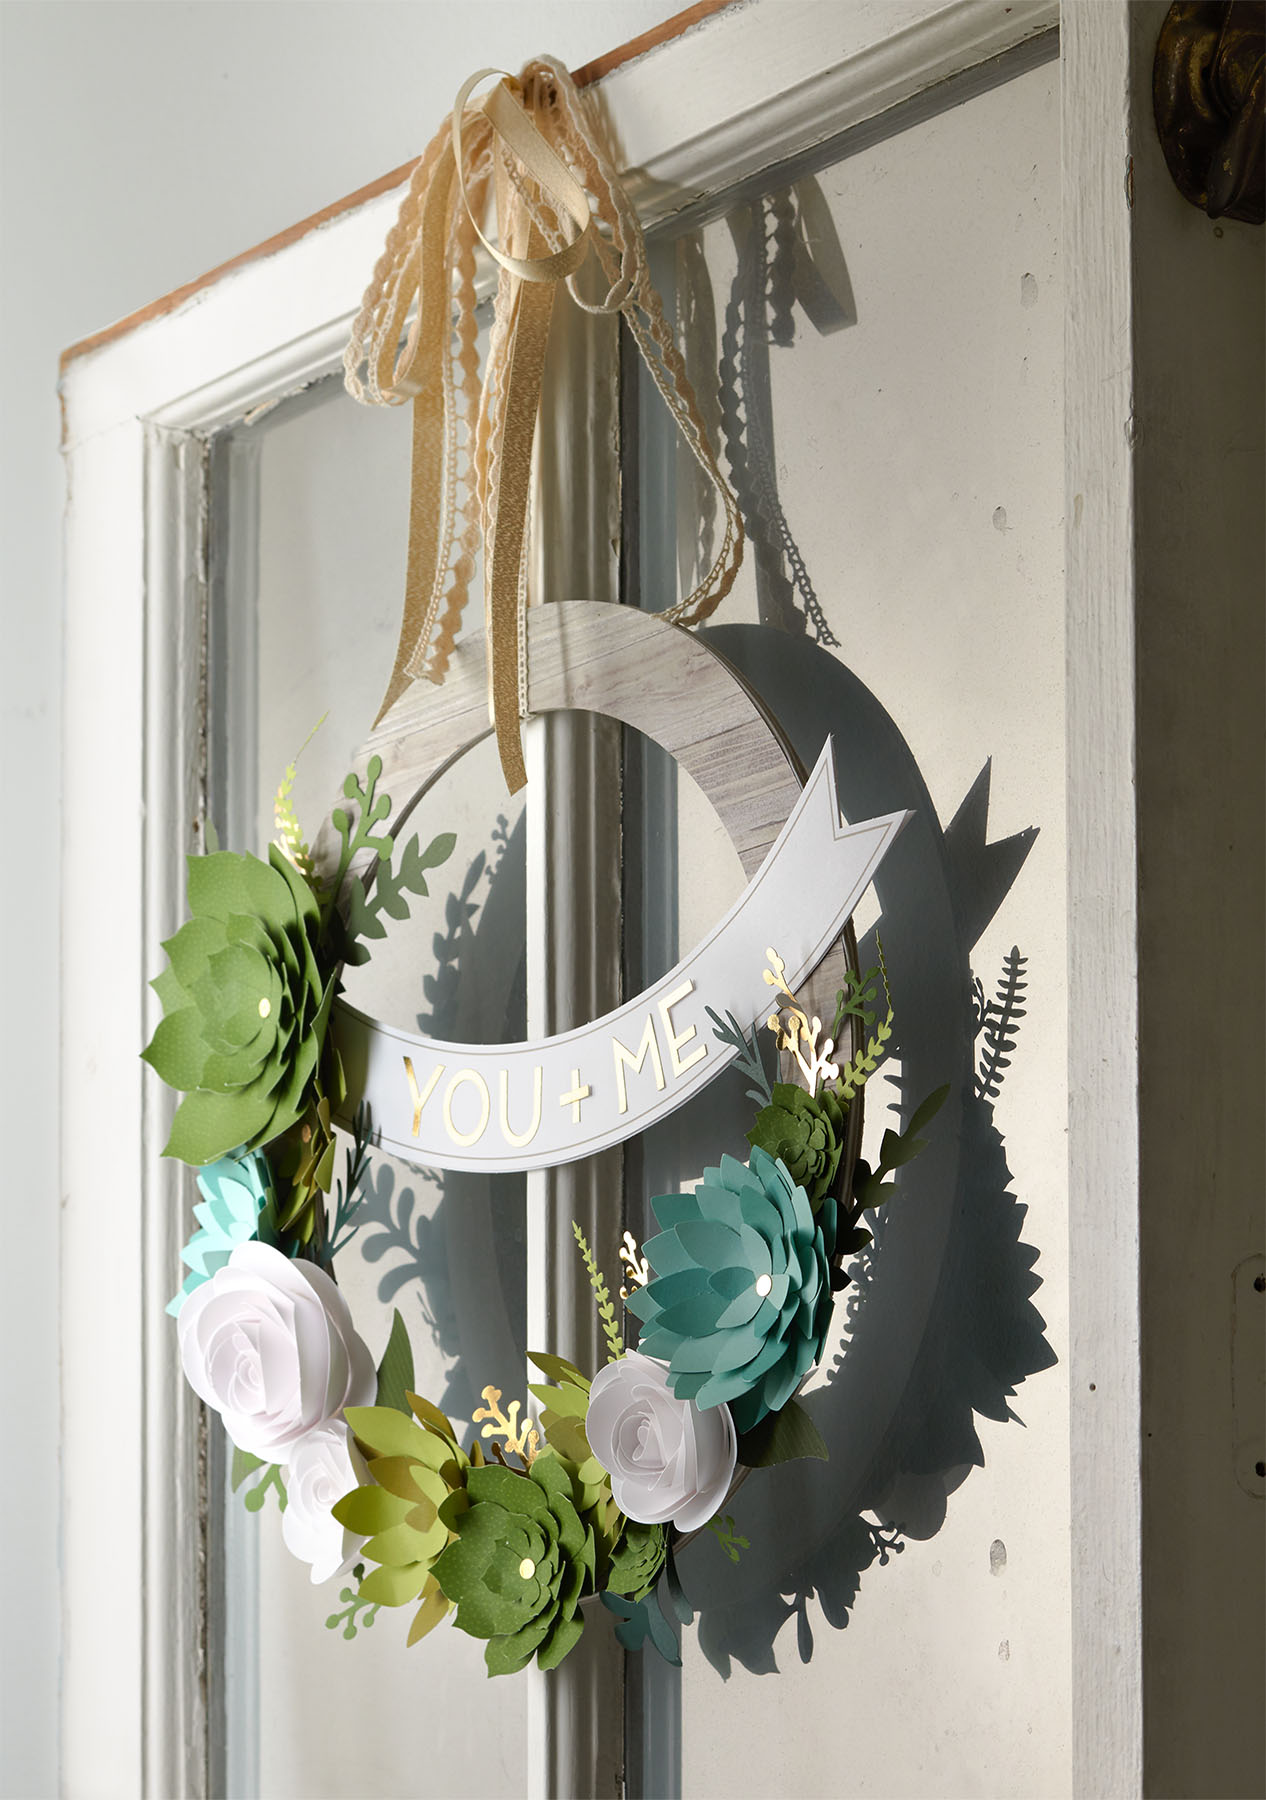 3 Unique Ways To Decorate Your Home With Paper Wreaths